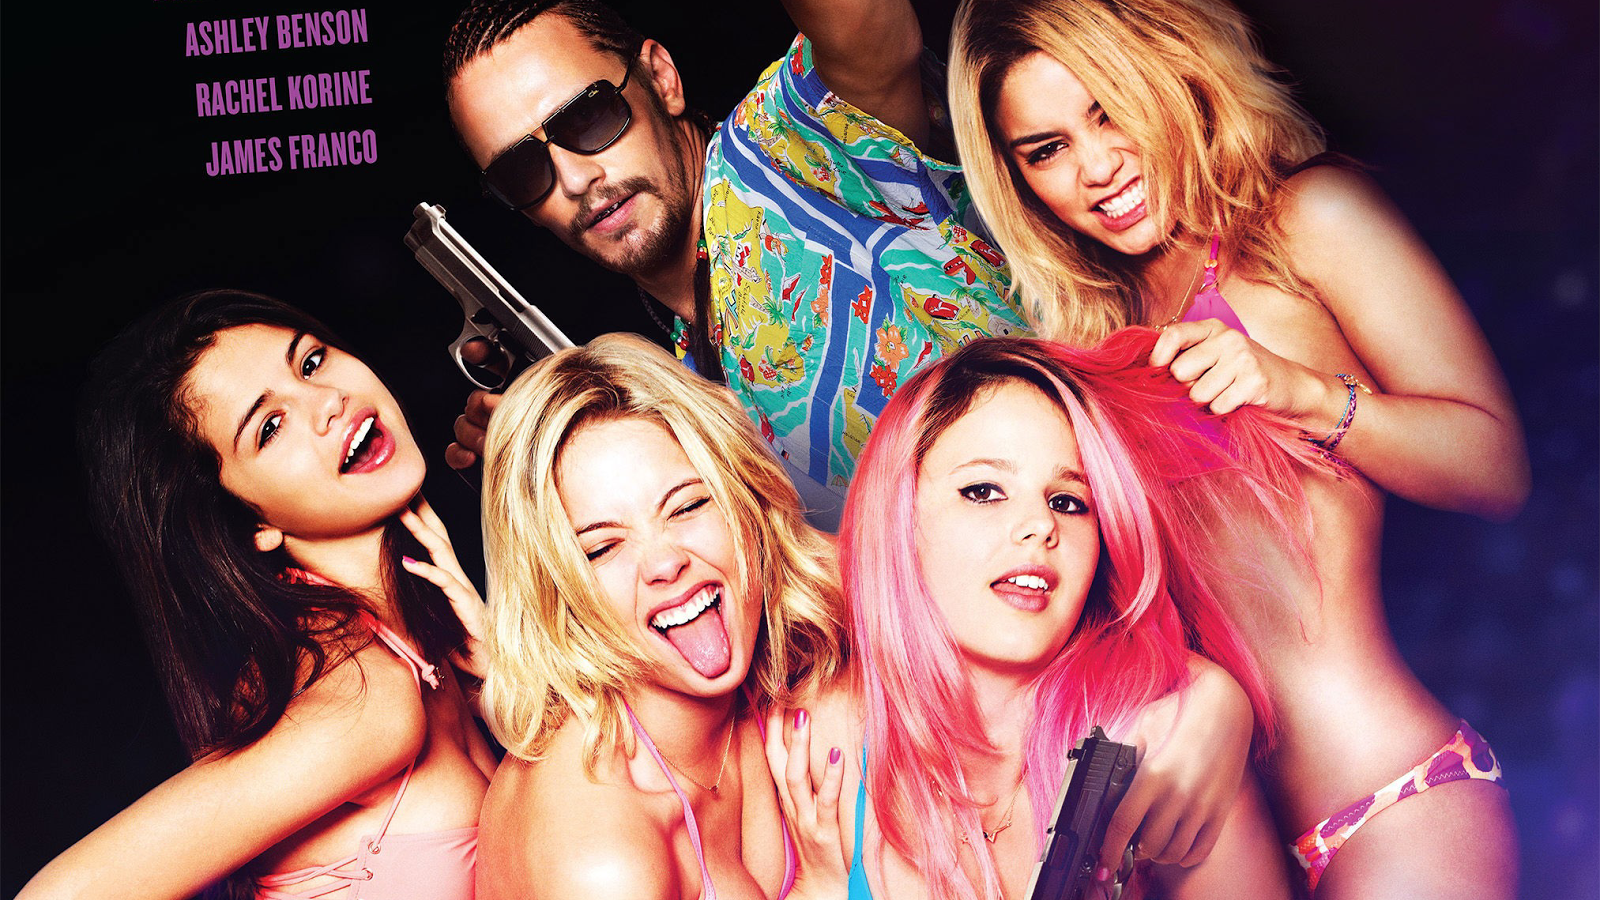 eclectic pop spring breakers follows four degenerate college girls as they head to spring break after robbing a restaurant filled customers so they can have the